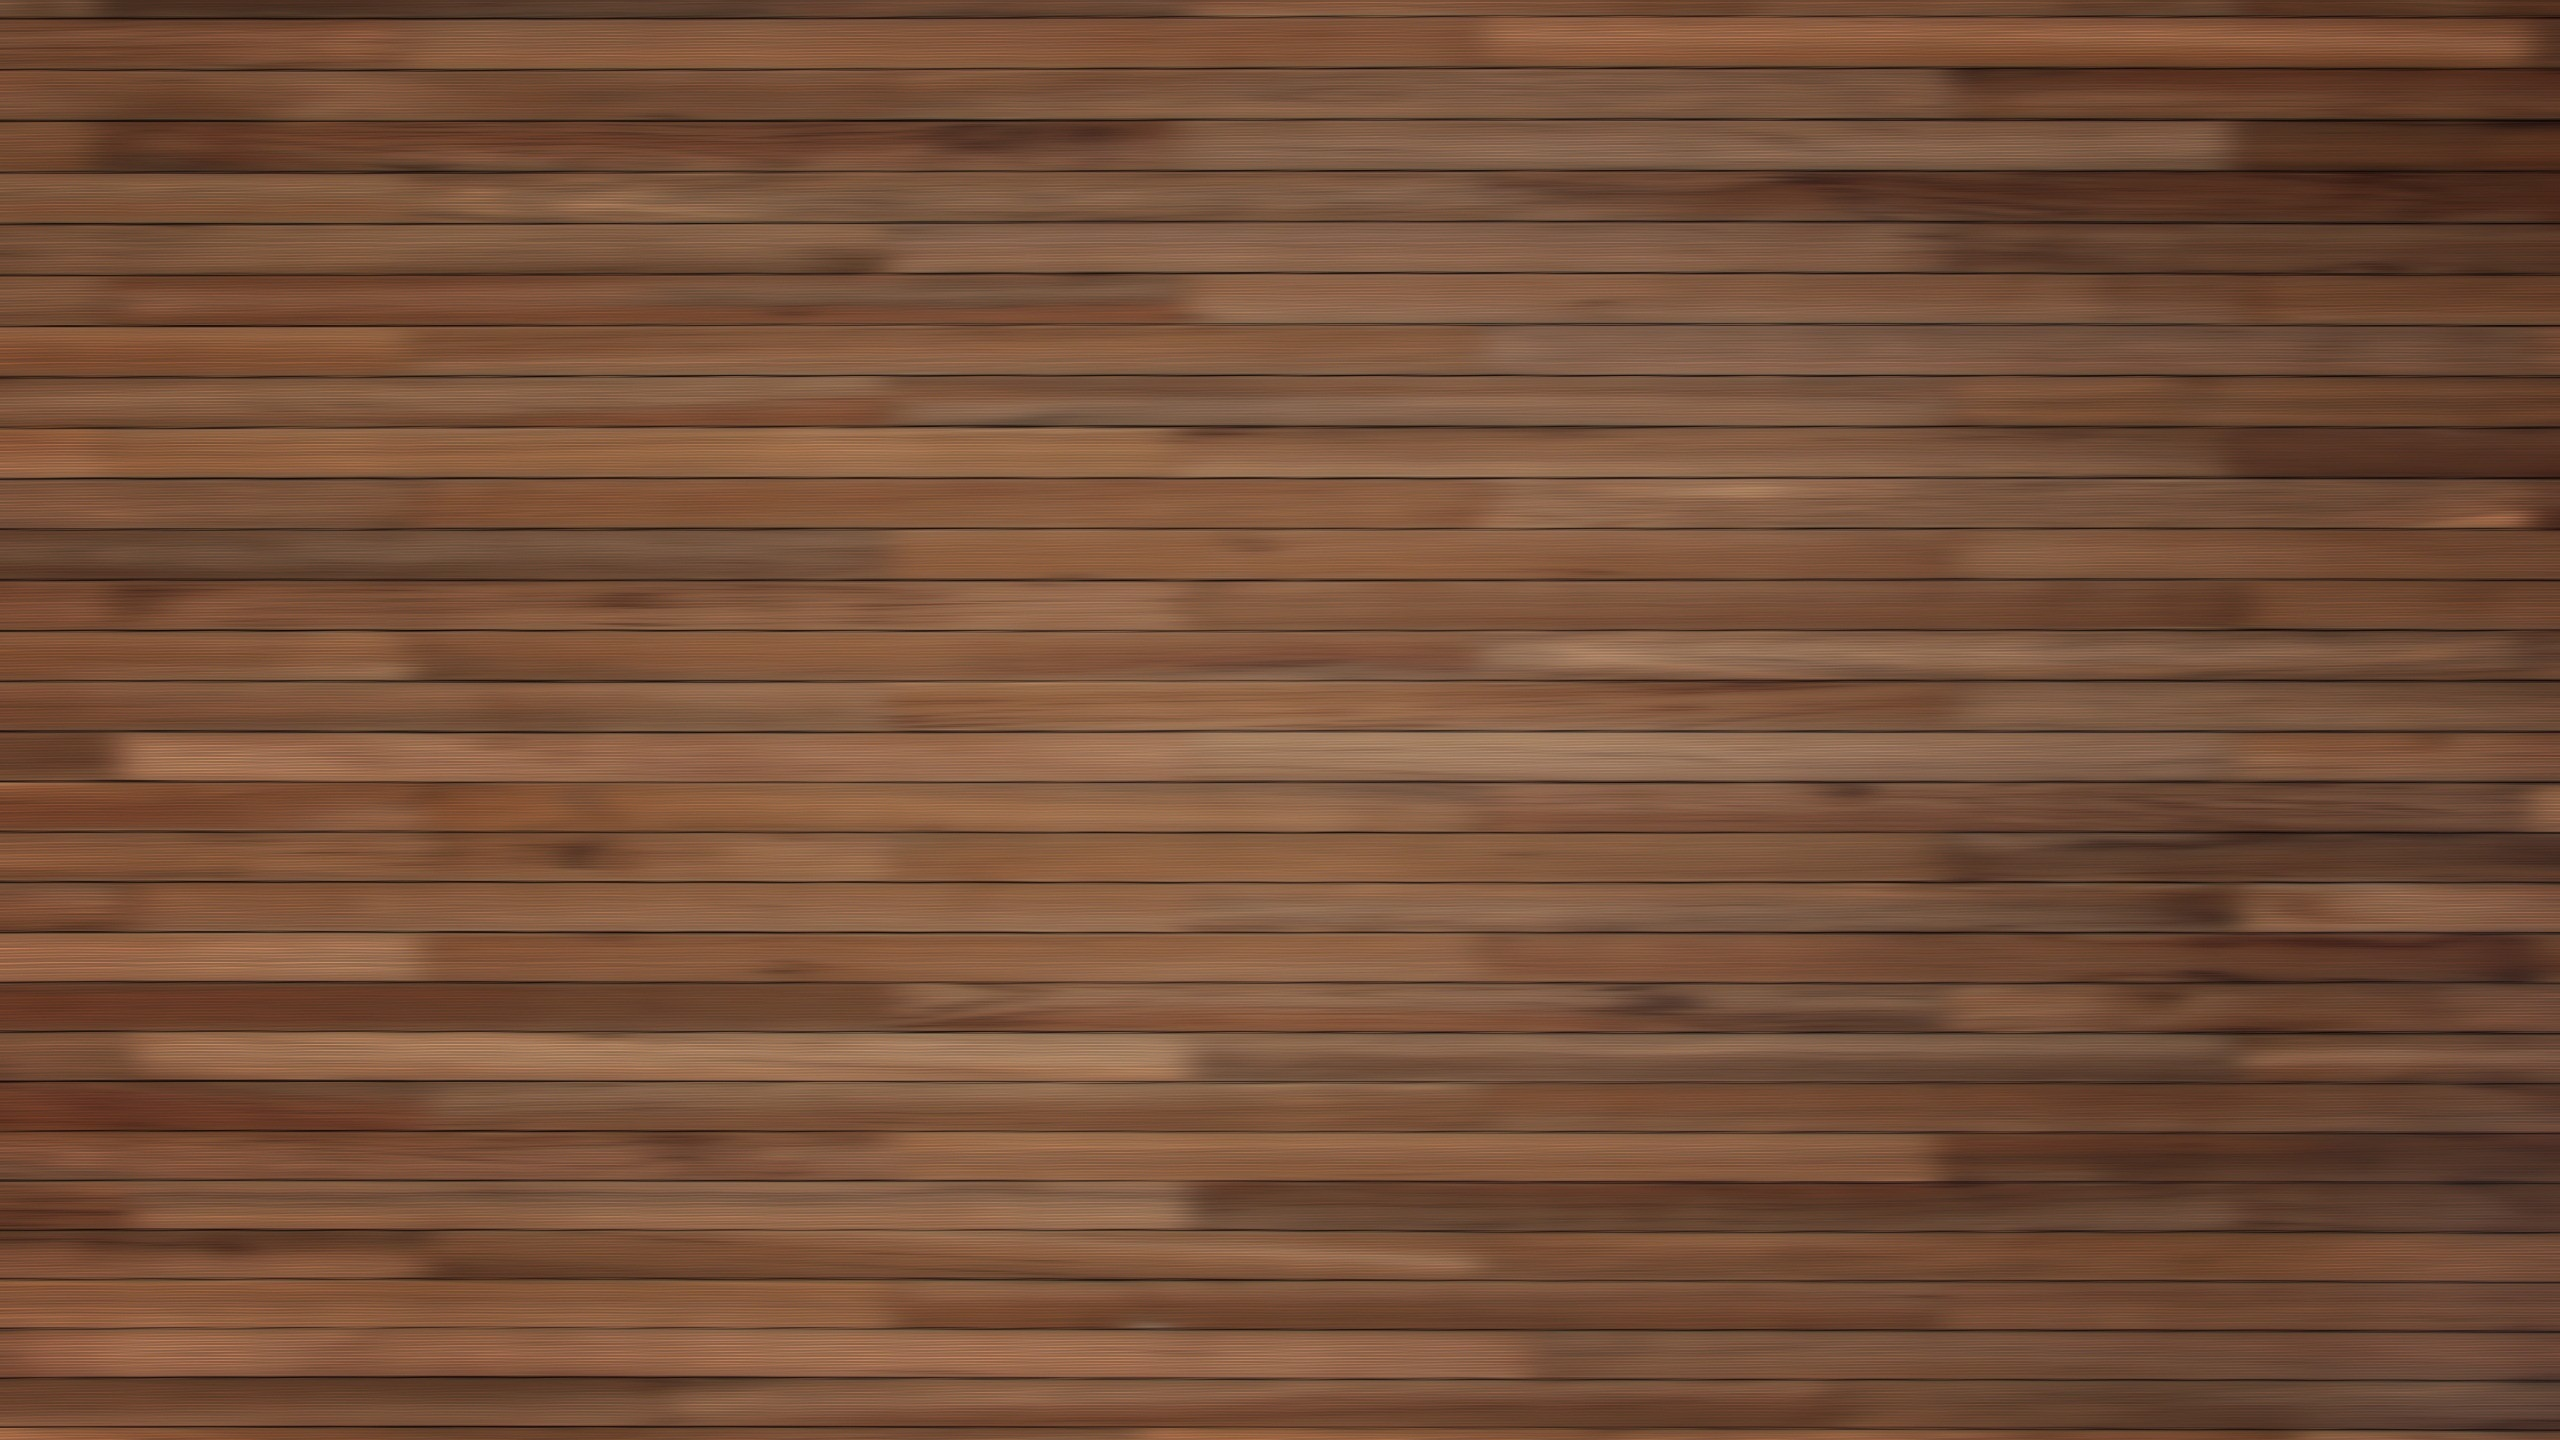 Download Wallpaper 2560x1440 wood bright stripes vertical Mac iMac 2560x1440